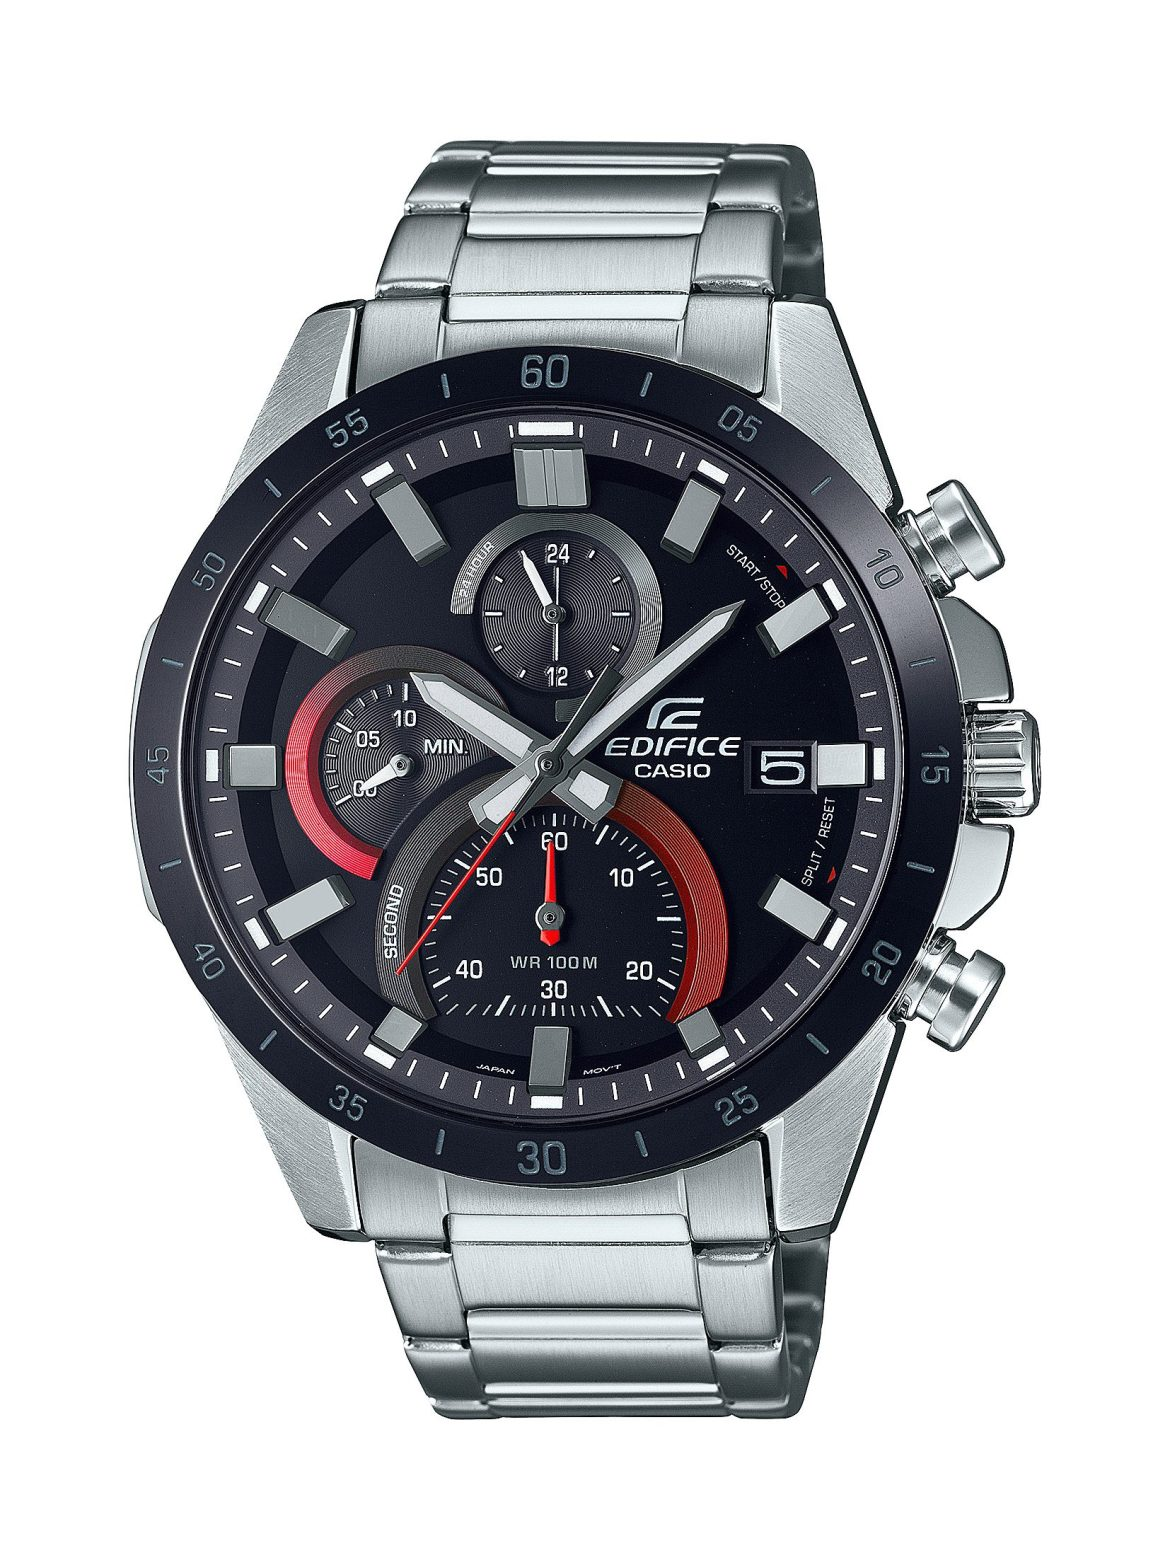 The most affordable Casio Edifice yet